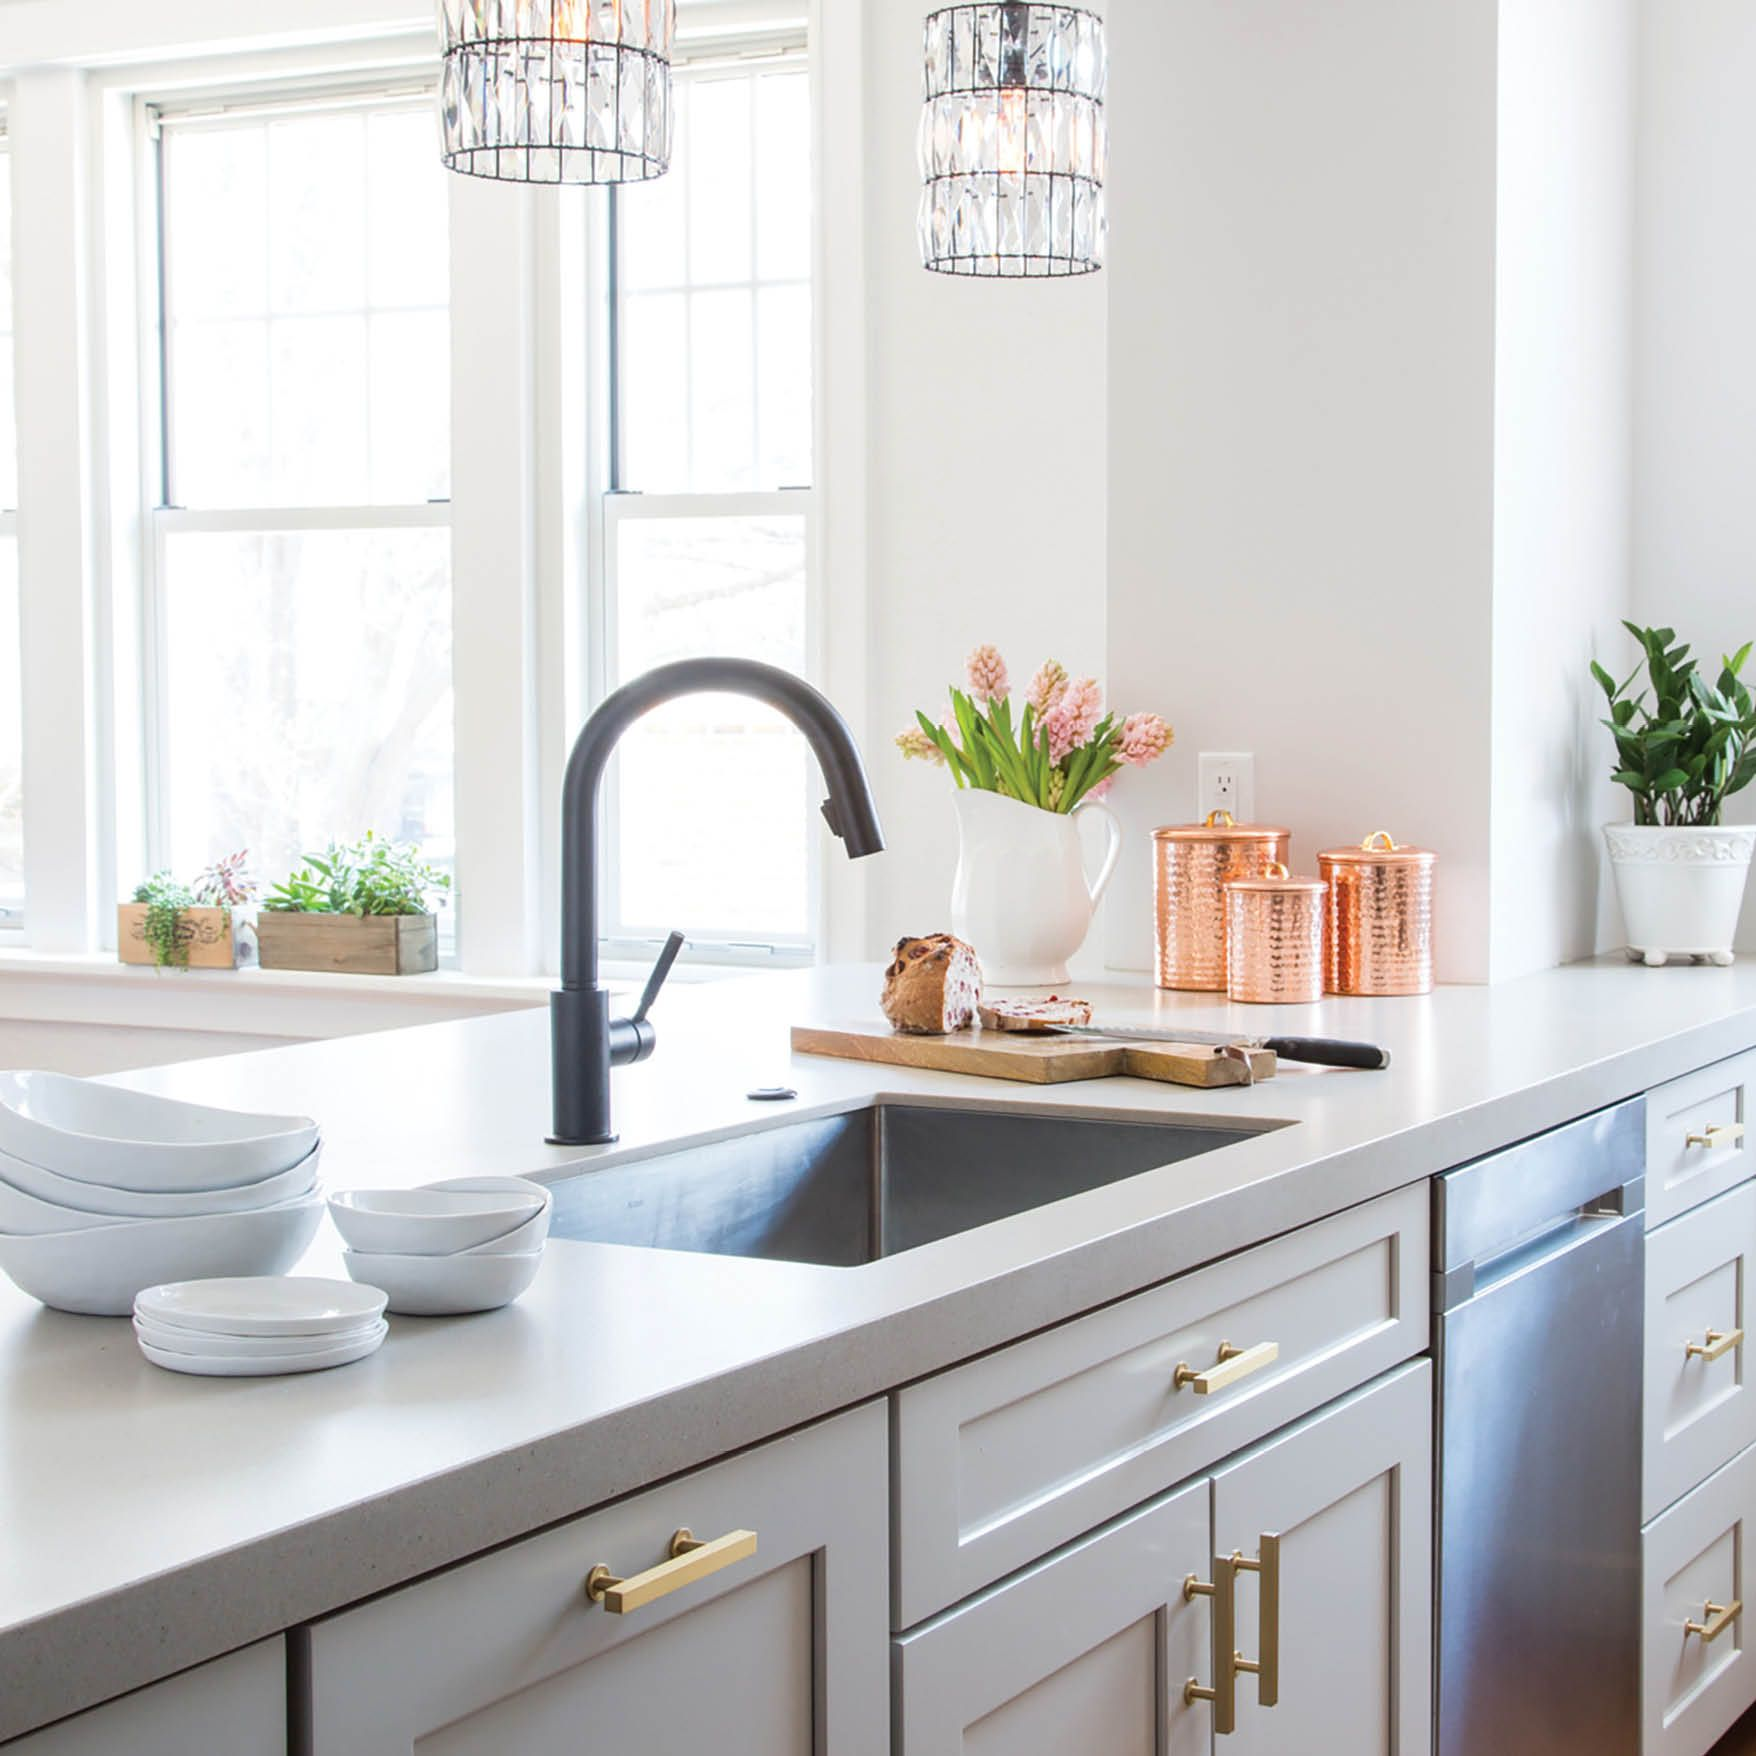 Before And After Wow What A Difference This Is The Transformational Work Of Wendy Kuhn Of Karr Bick K Kitchen Design Kitchen And Bath Design St Louis Kitchen